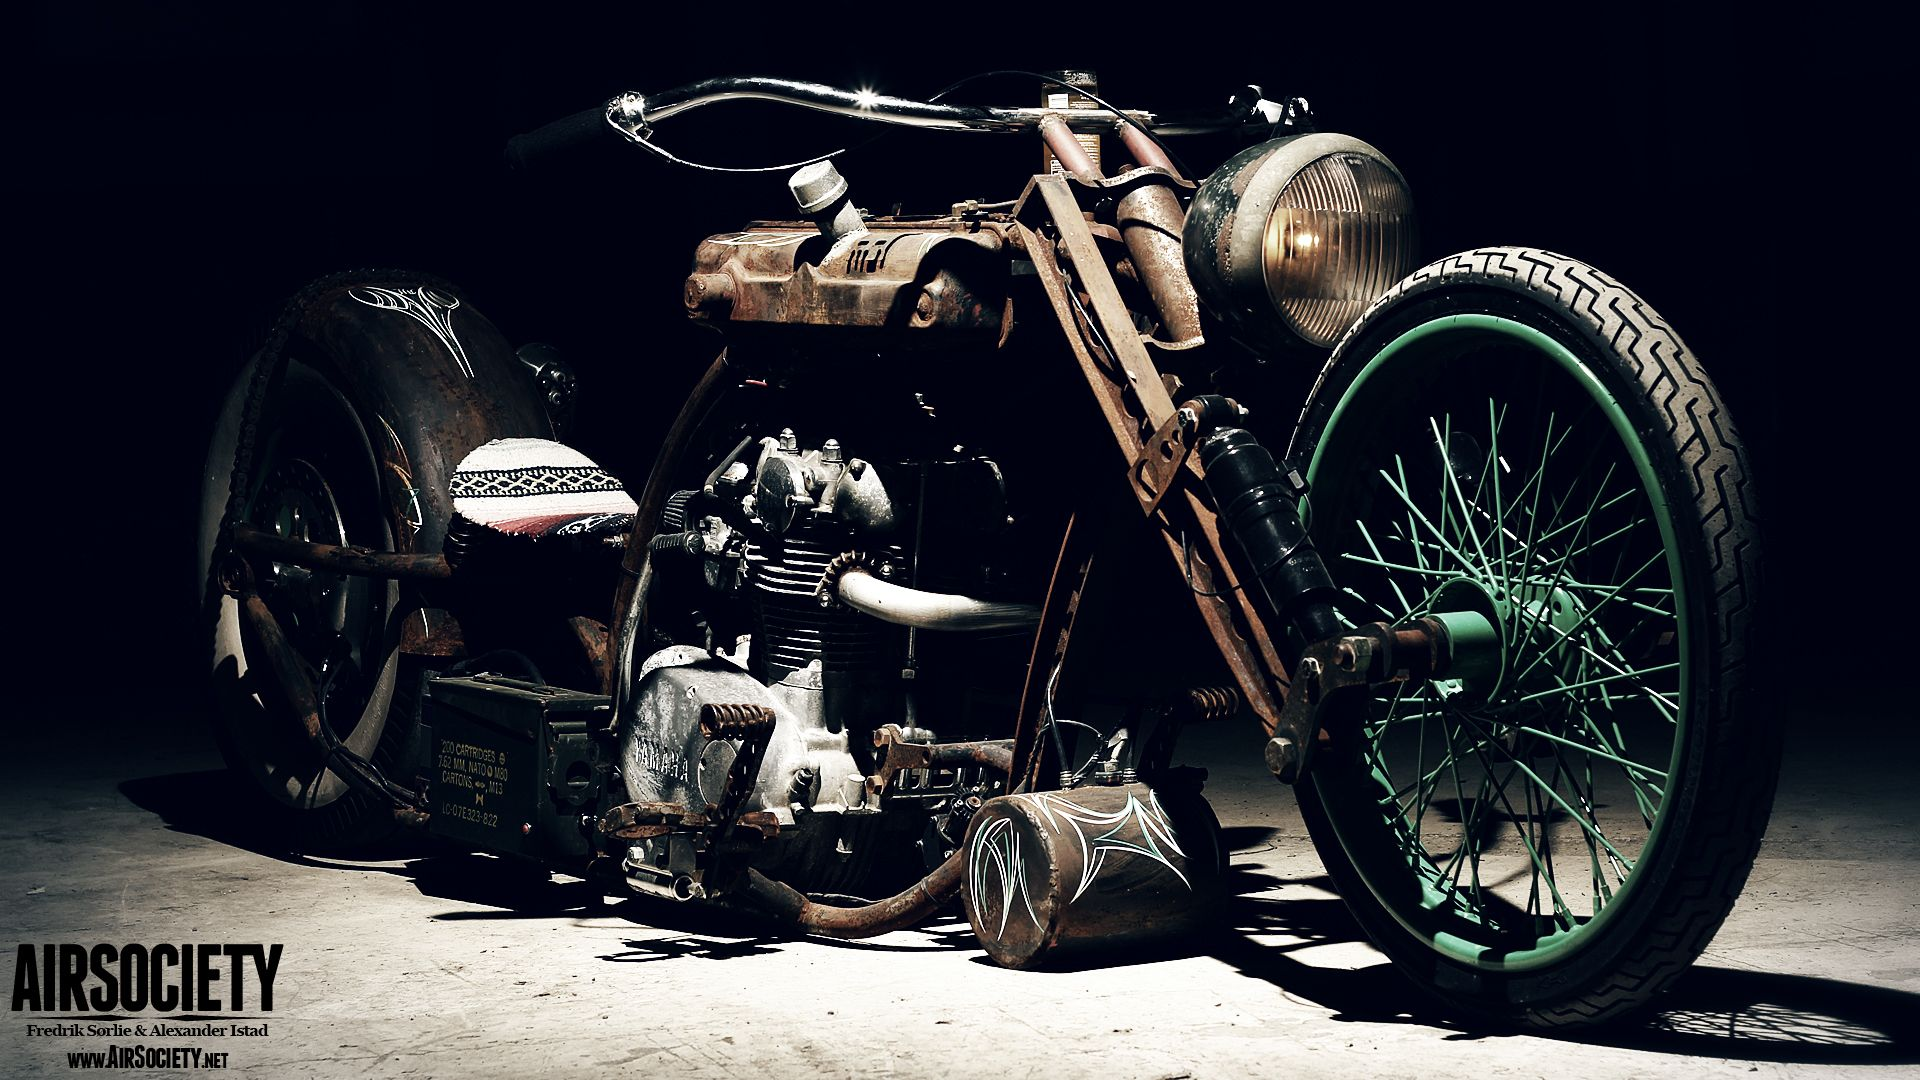 Old Motorcycle Computer Wallpapers   Top Old Motorcycle 1920x1080